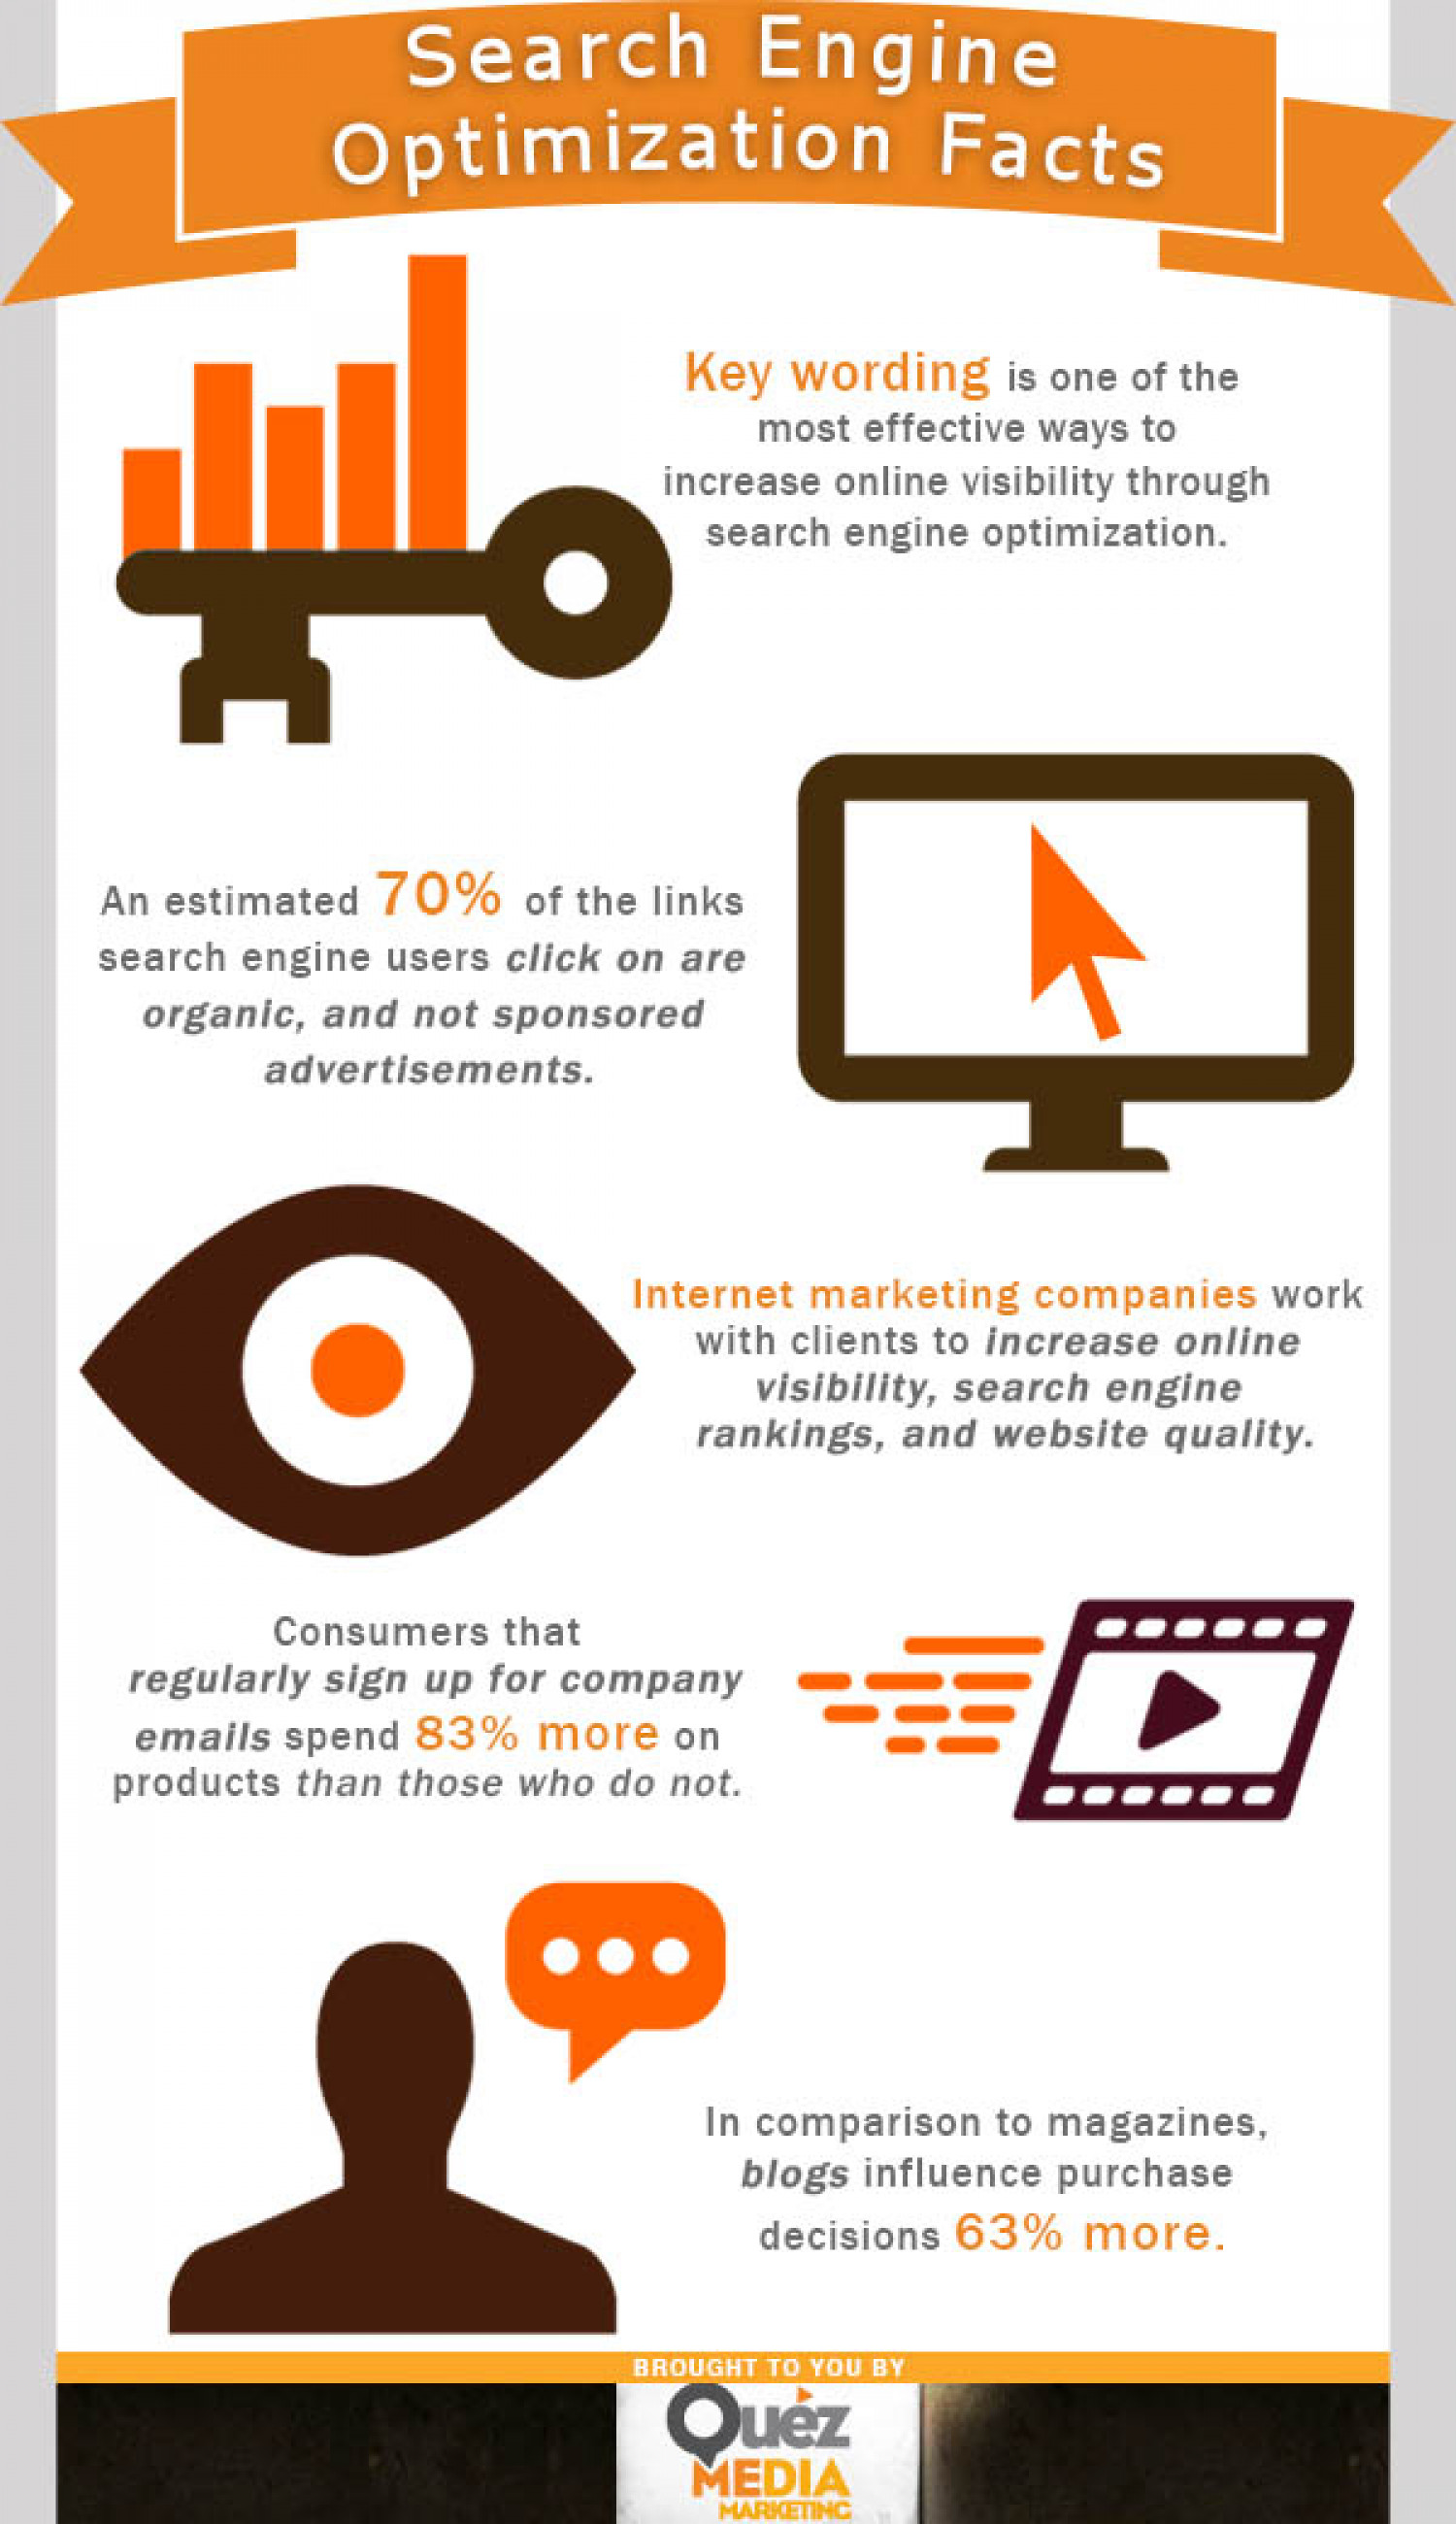 Search Engine Optimization Facts Infographic